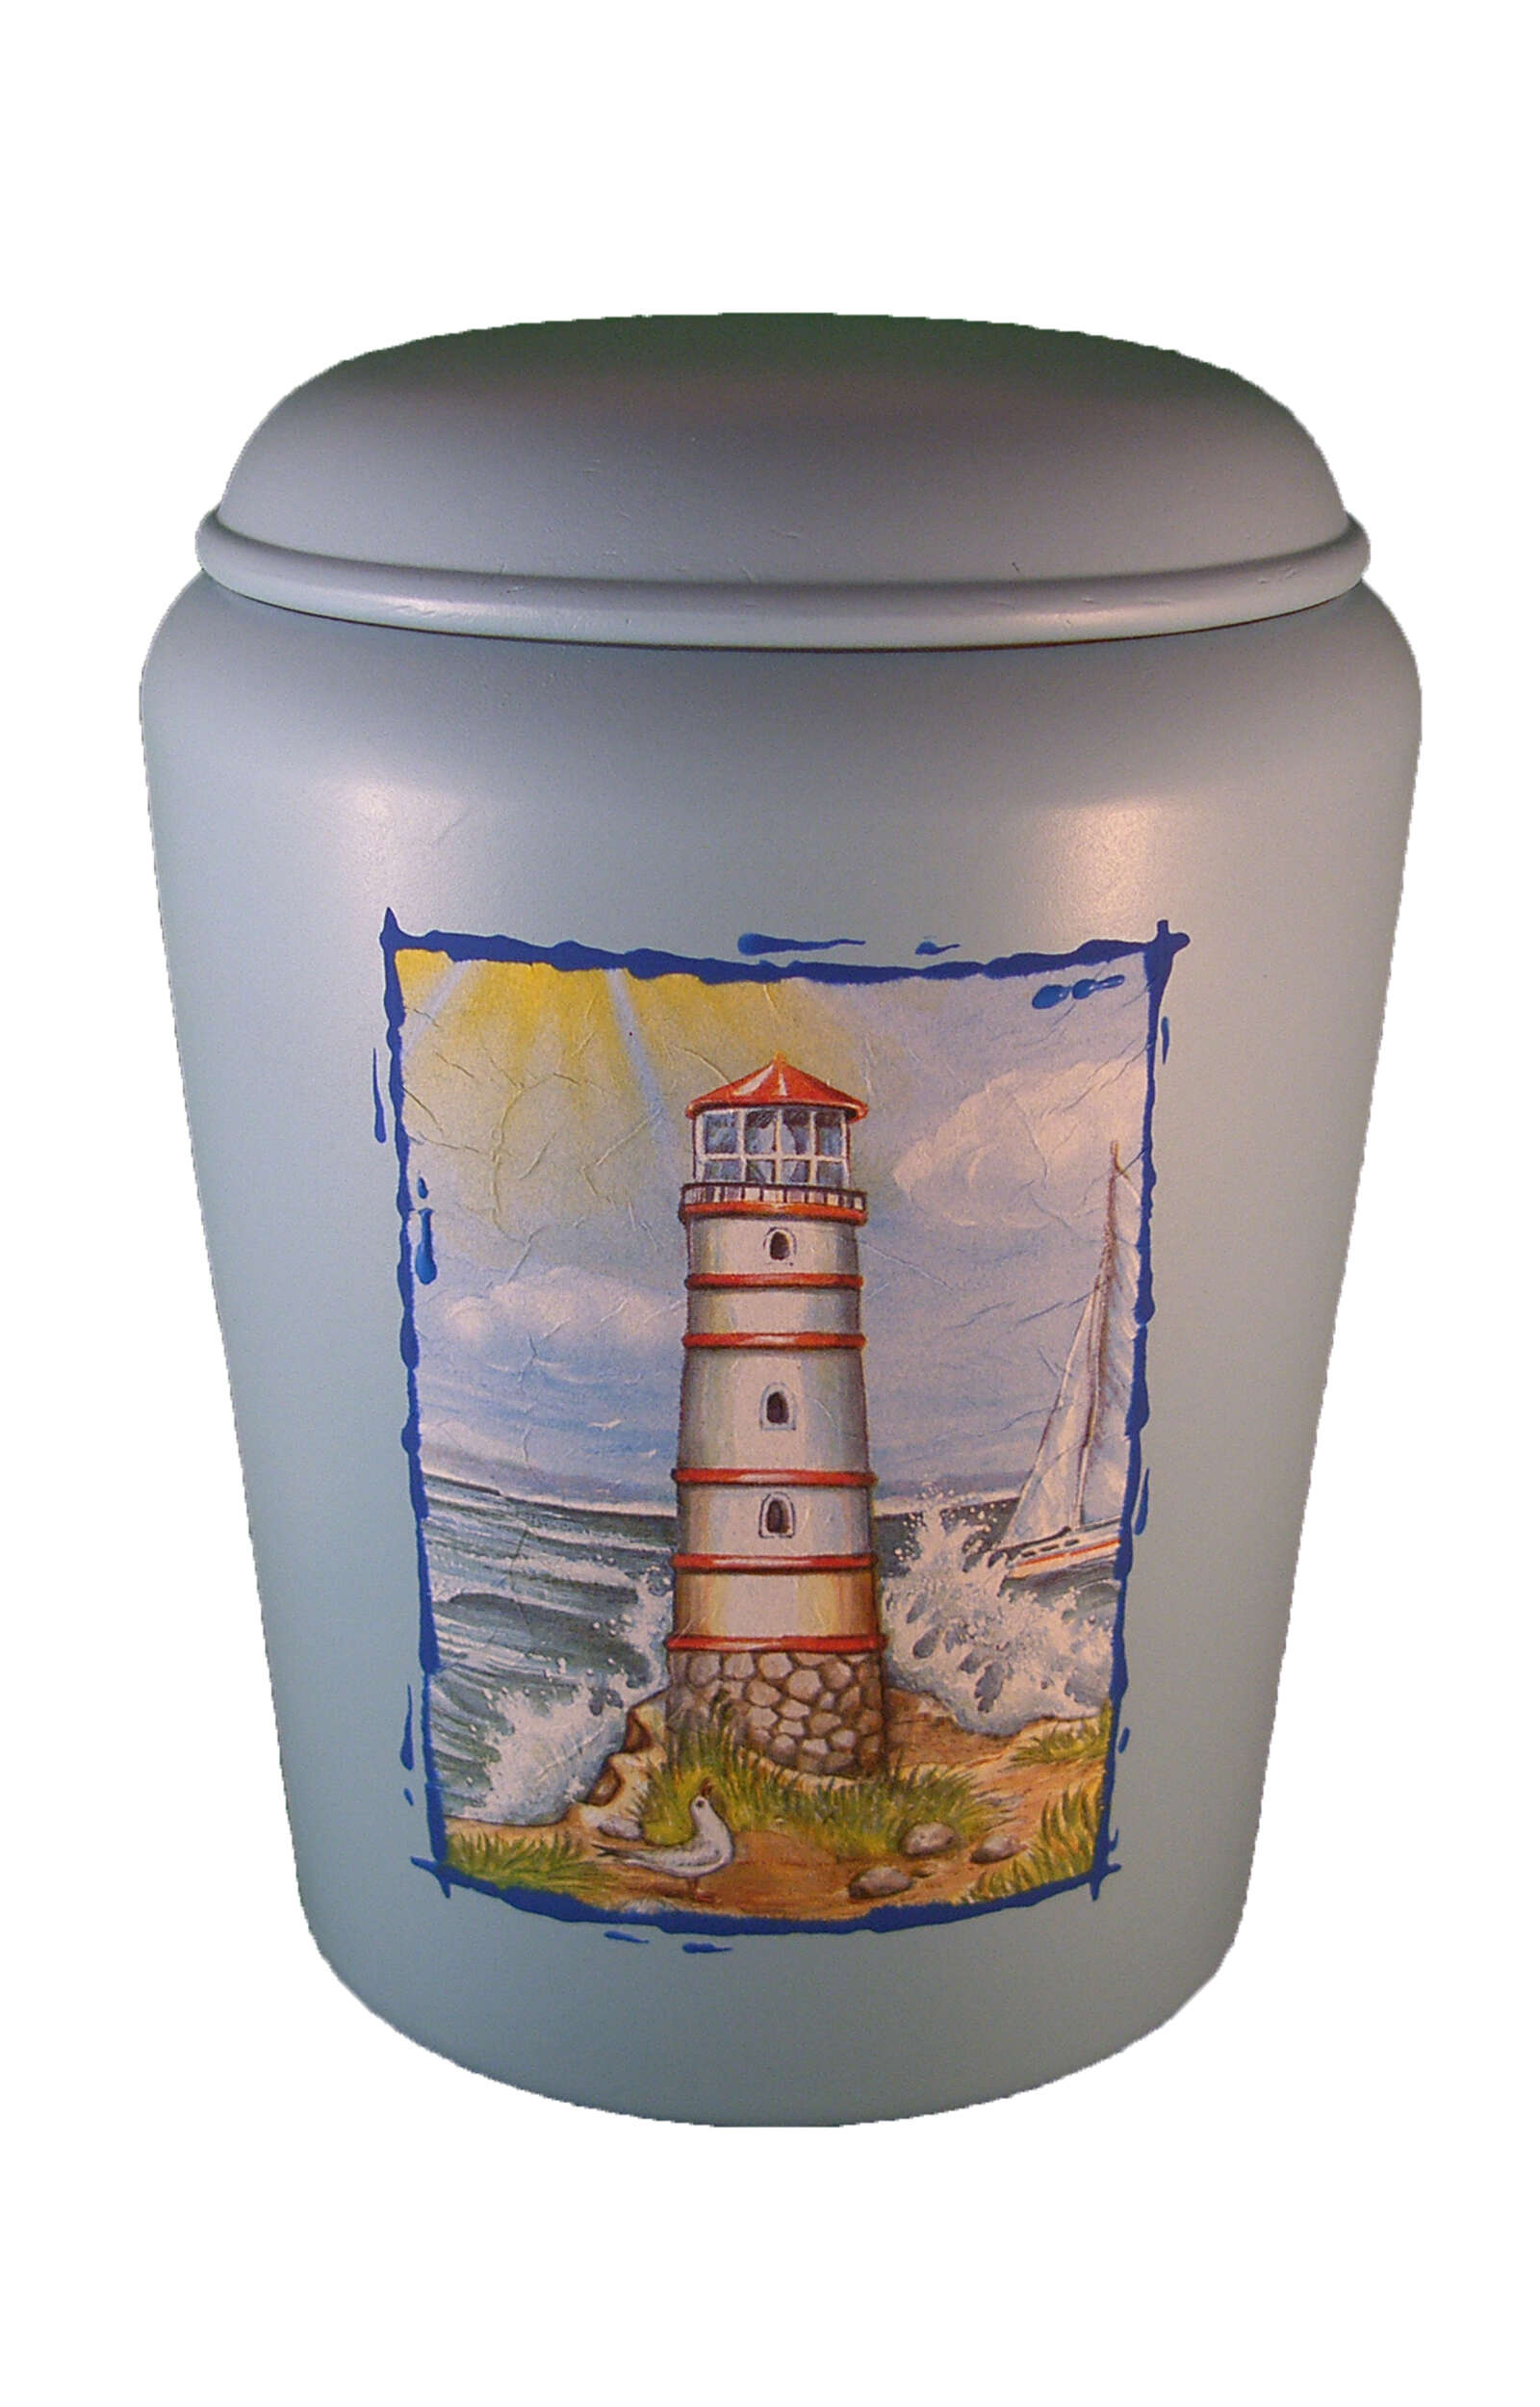 en BBL1730 biodigradable urn lighthouse light blue Nona Mela funeral urn for human ashes